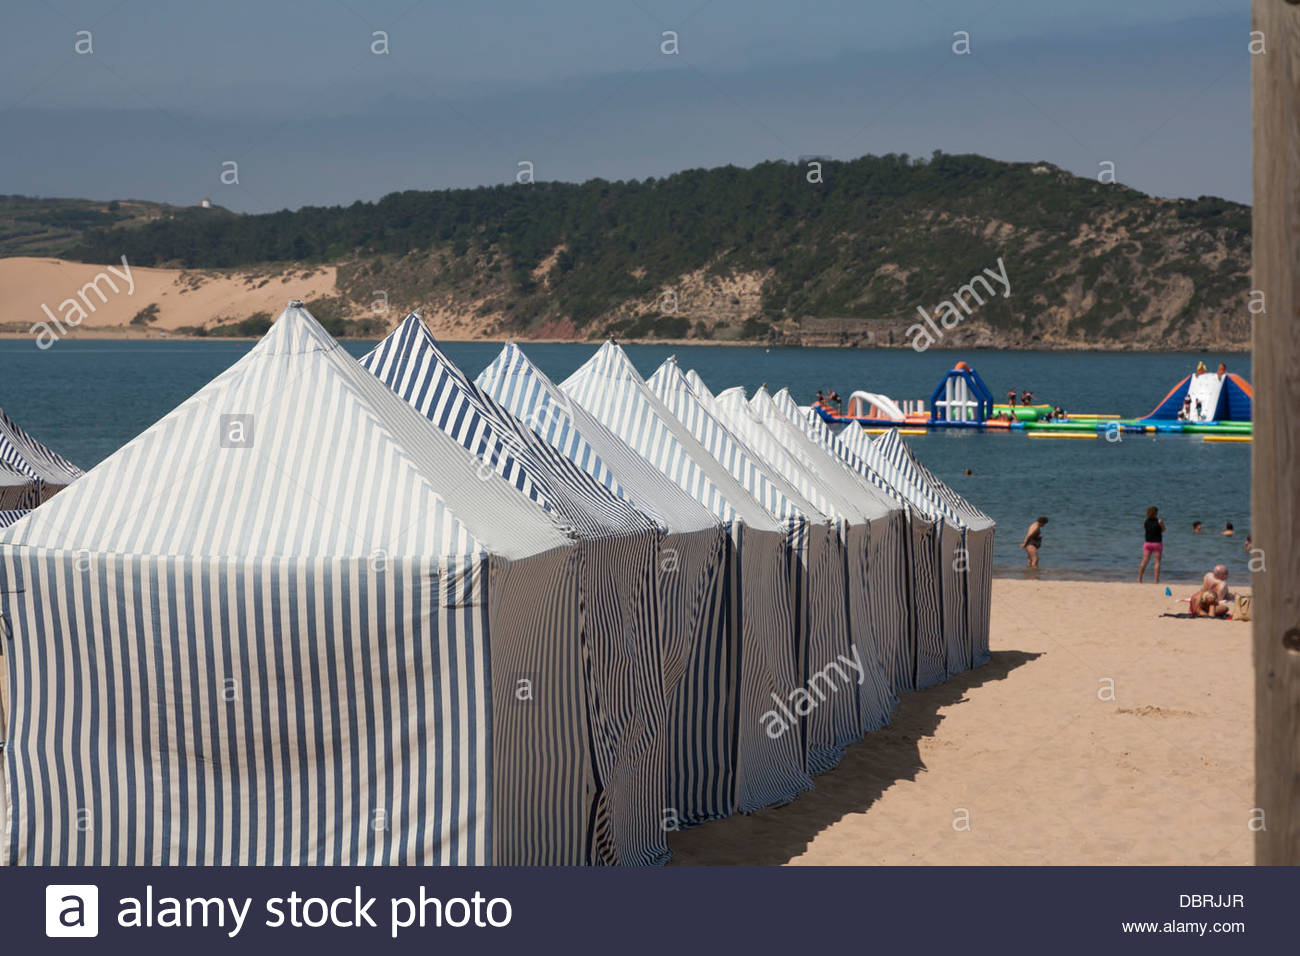 a row of blue and white striped beach tents at the coastal resort of Sao Martinho do Porto on the Silver Coast Portugal & a row of blue and white striped beach tents at the coastal resort ...